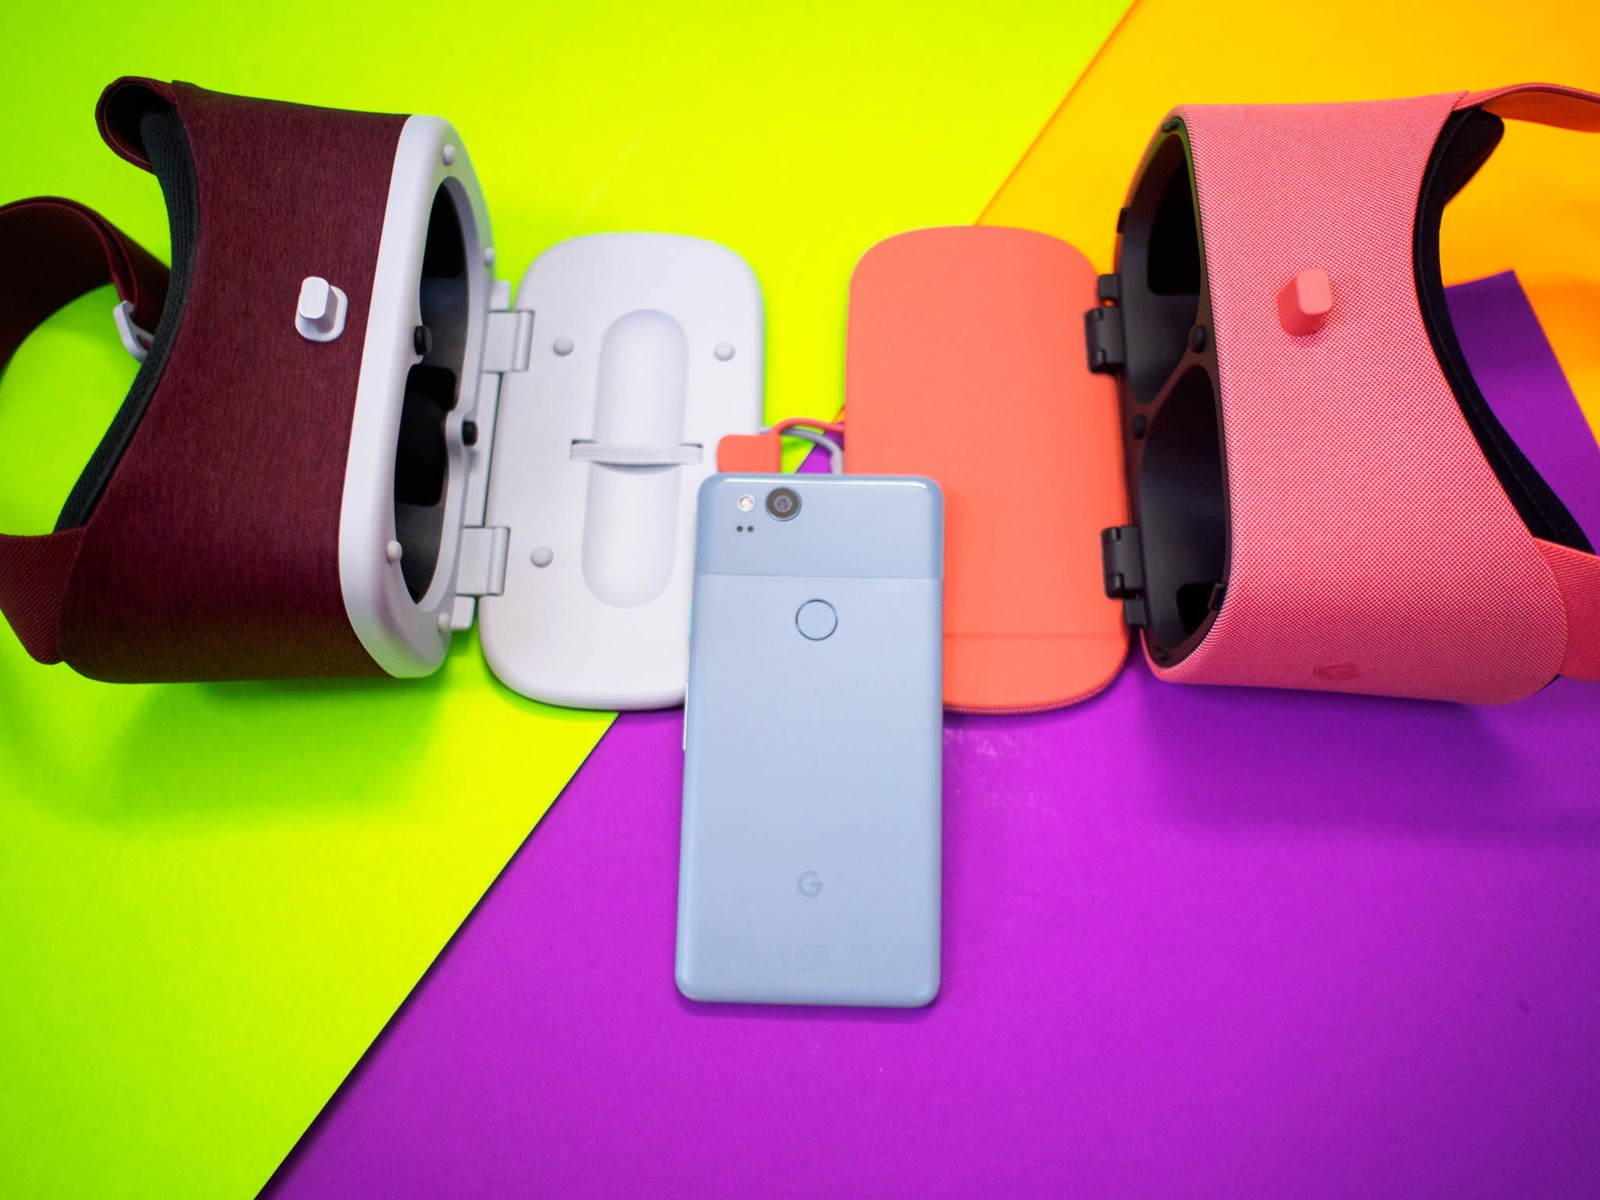 aae58973bf0 Google made a variety of updates to Daydream View when they premiered their  2017 model. Along with changes in the fabric